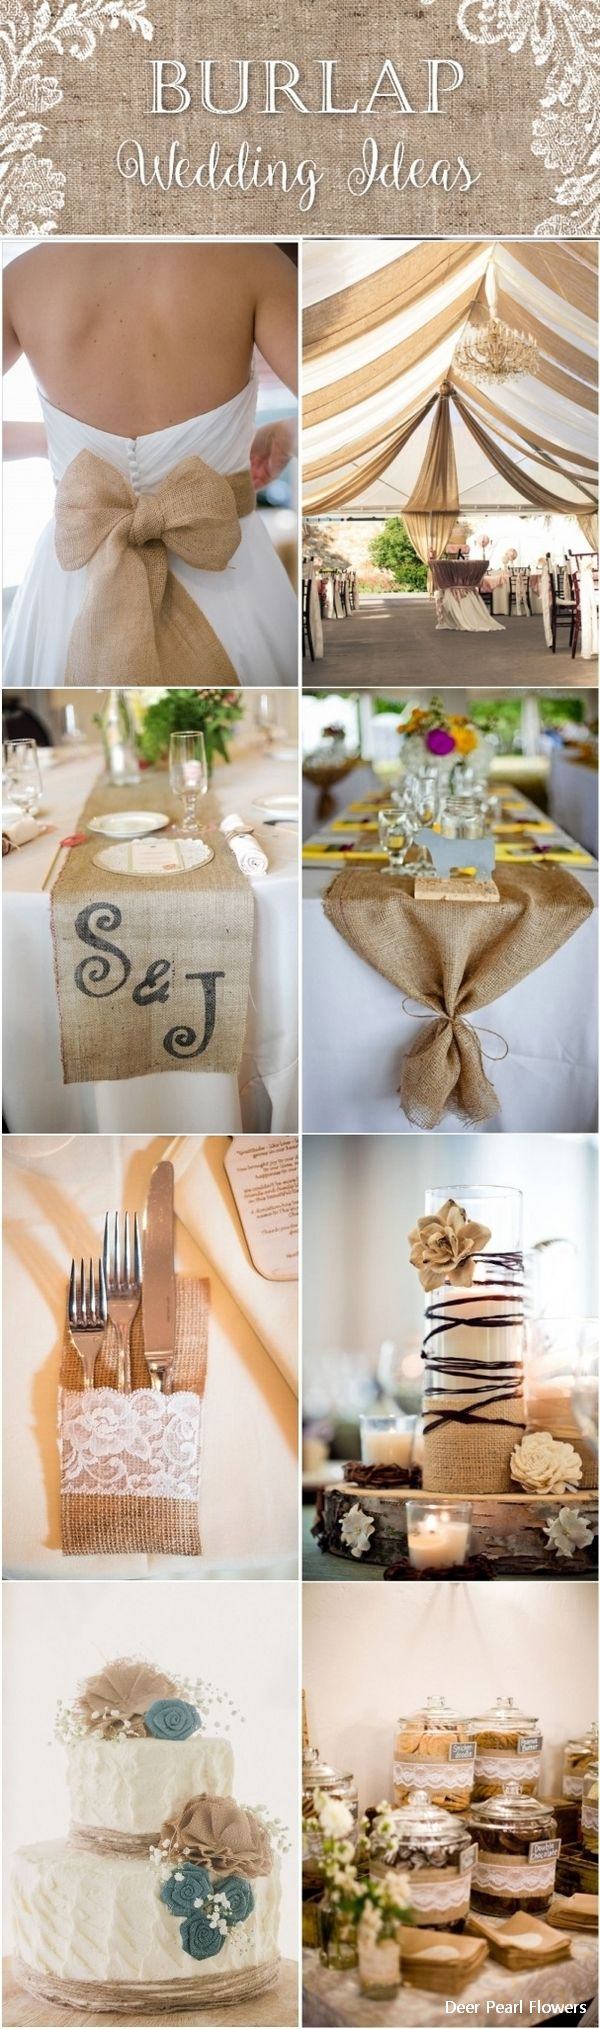 55 Chic-Rustic Burlap and Lace Wedding Ideas #countrywedding #weddingideas #rusticwedding #wedding